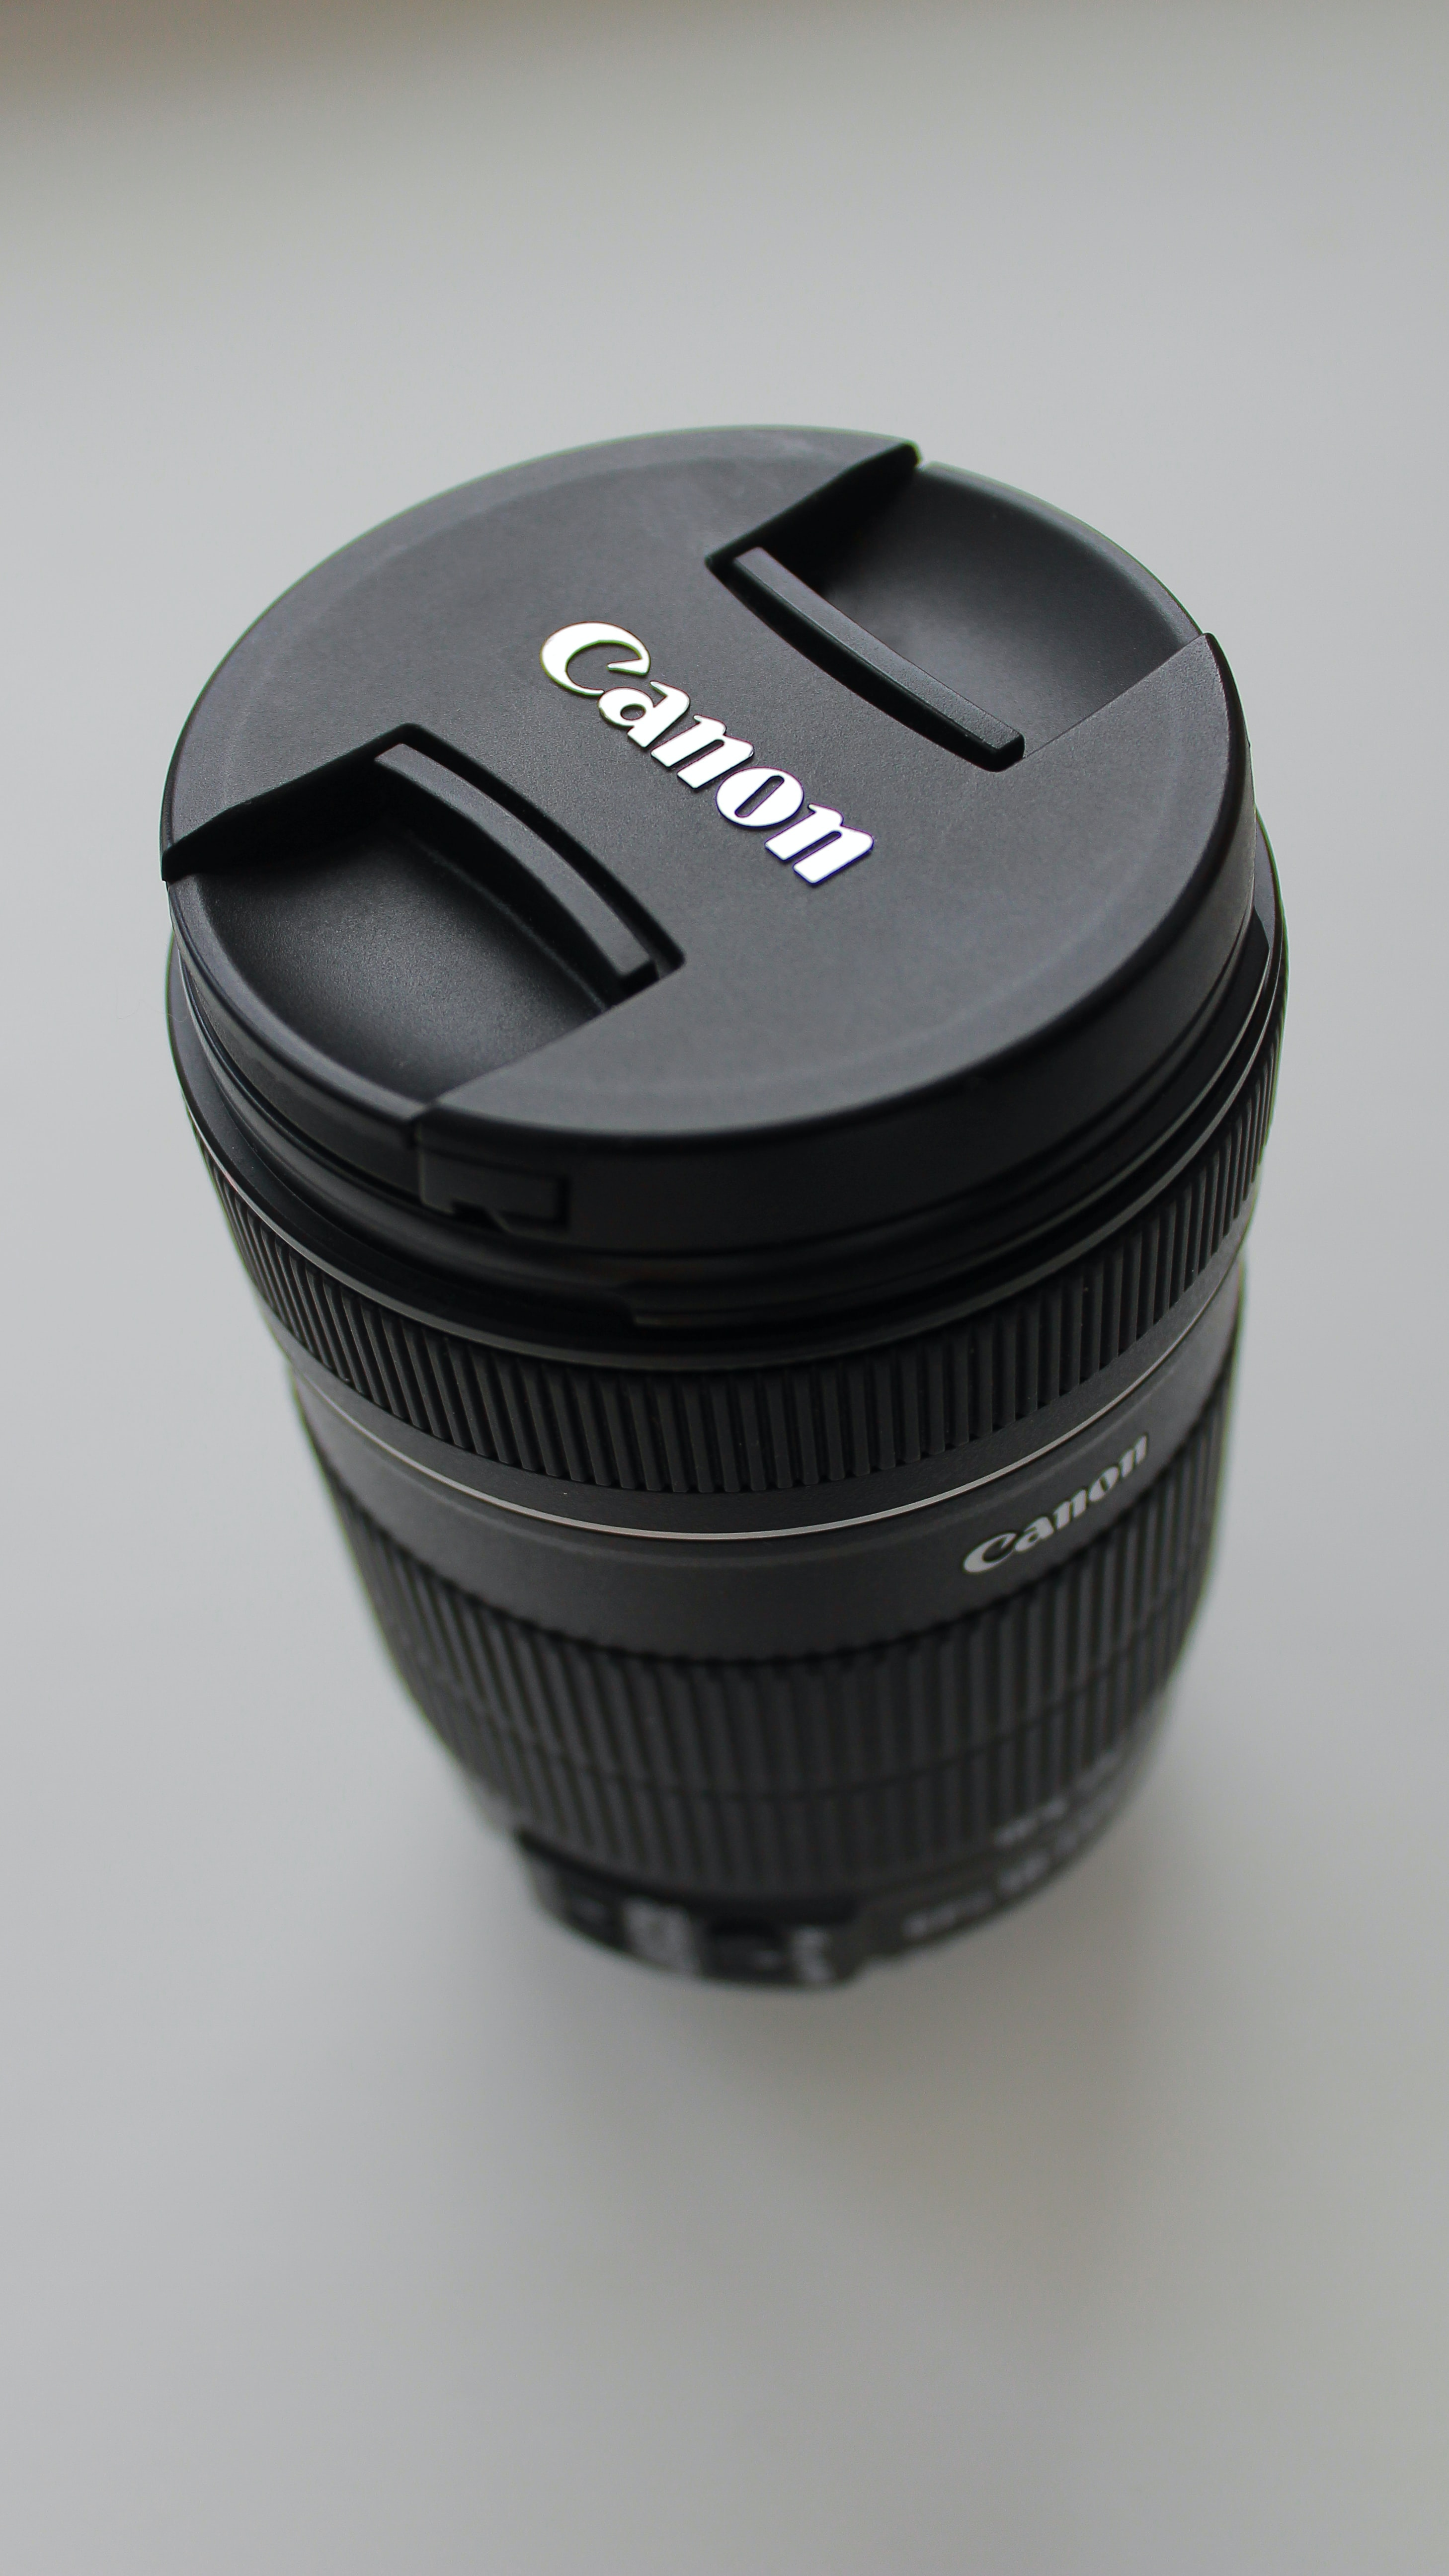 black Canon DSLR camera lens on white tabletop